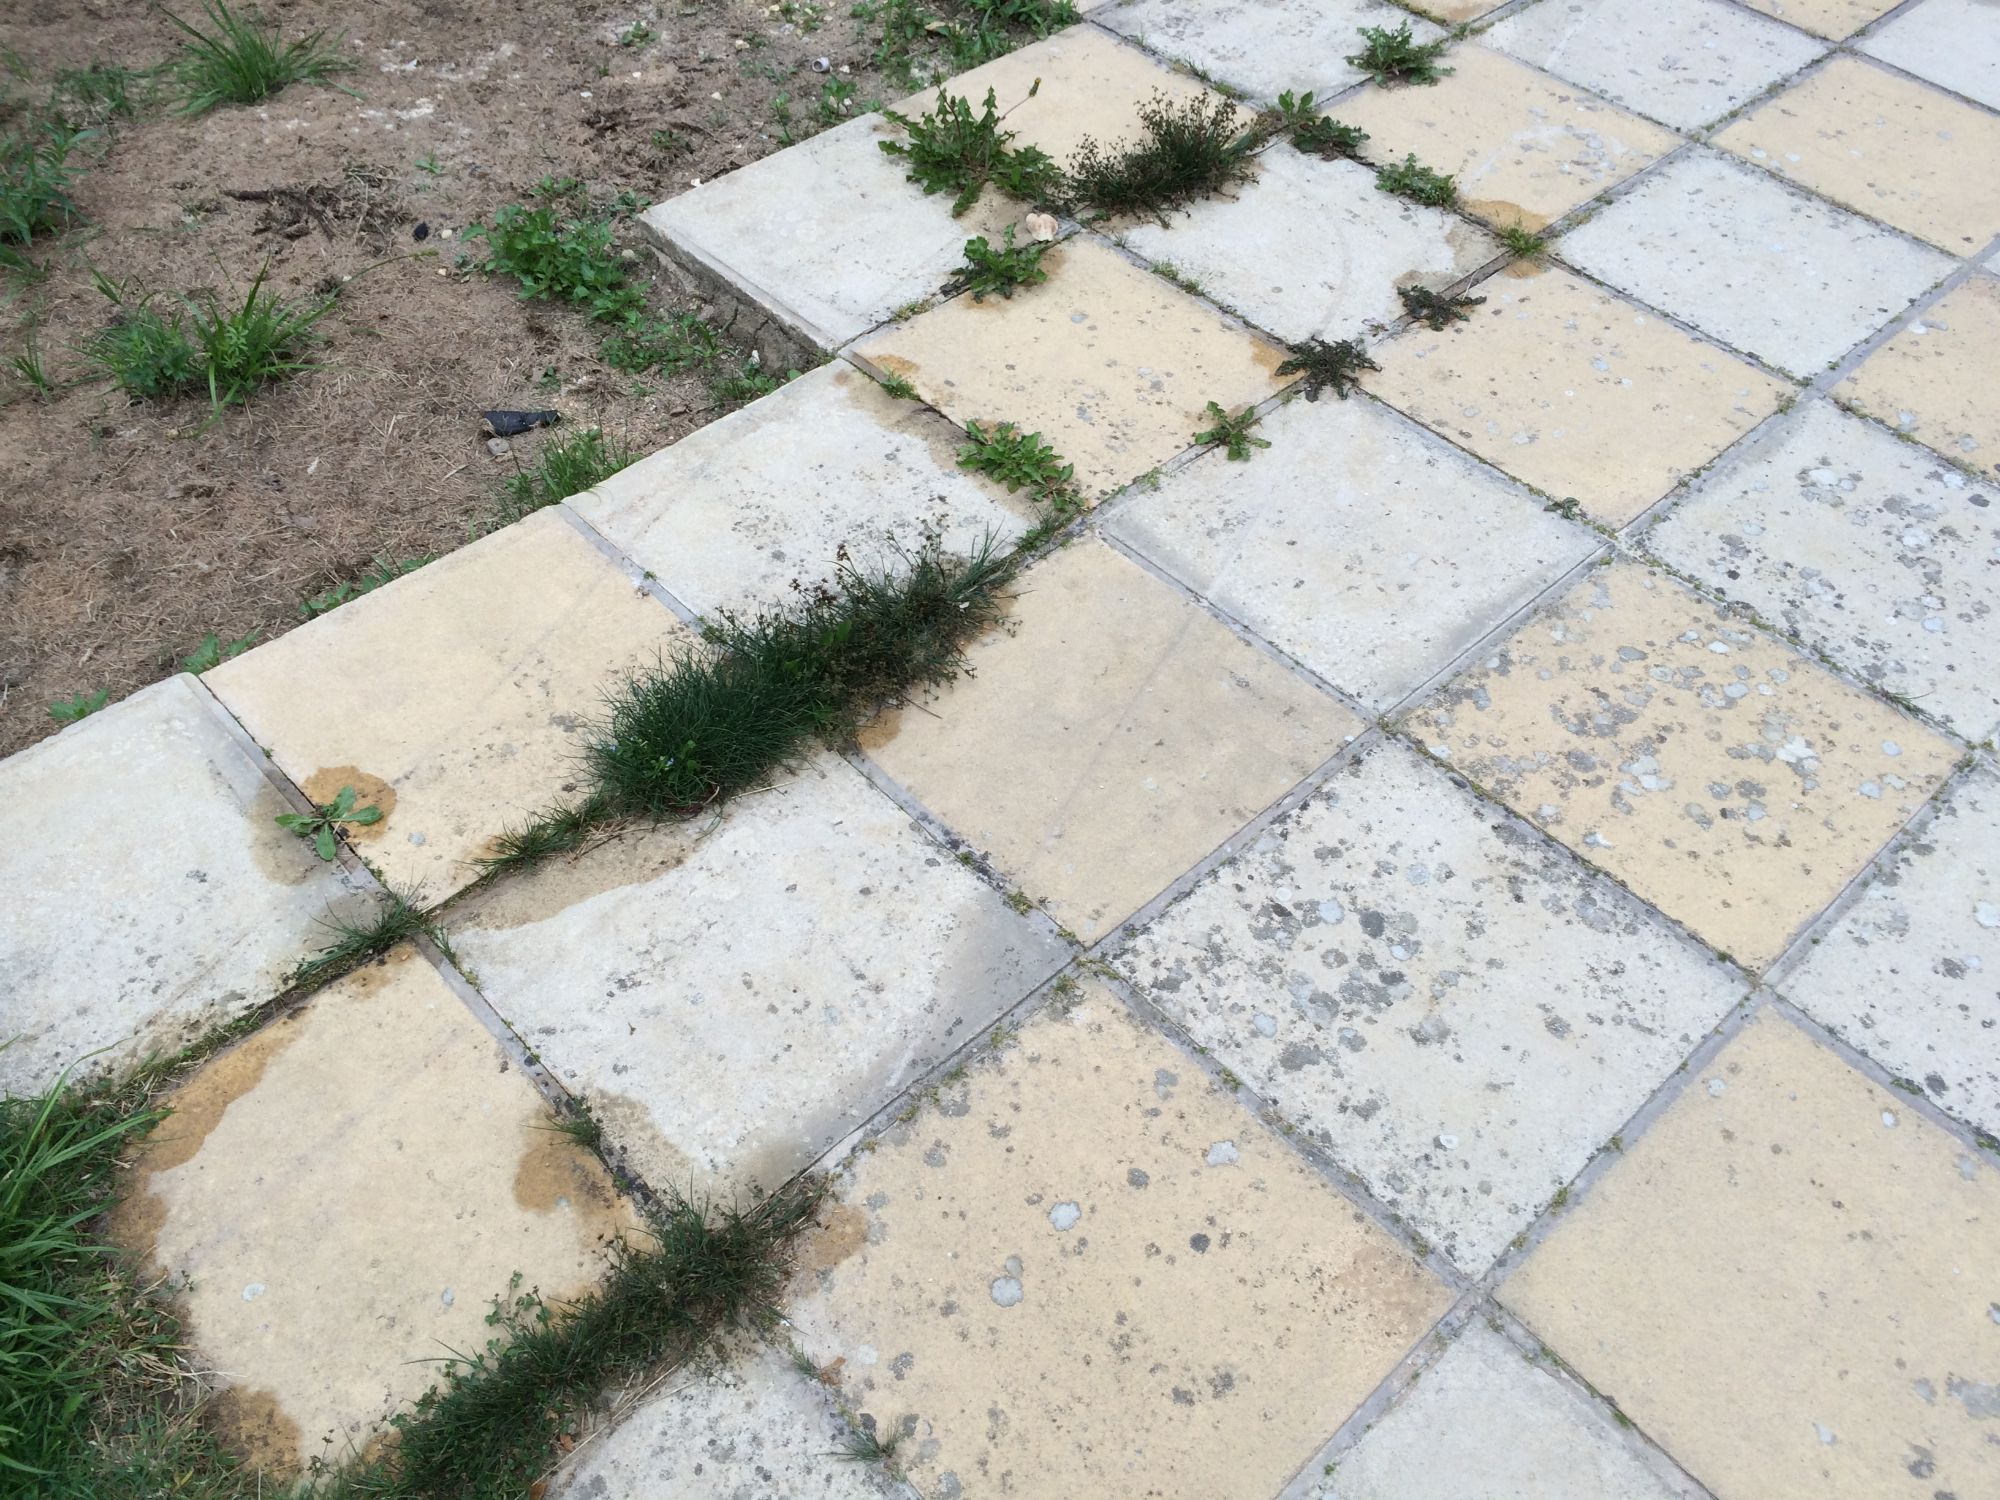 free stock image photo patio garden needs updating